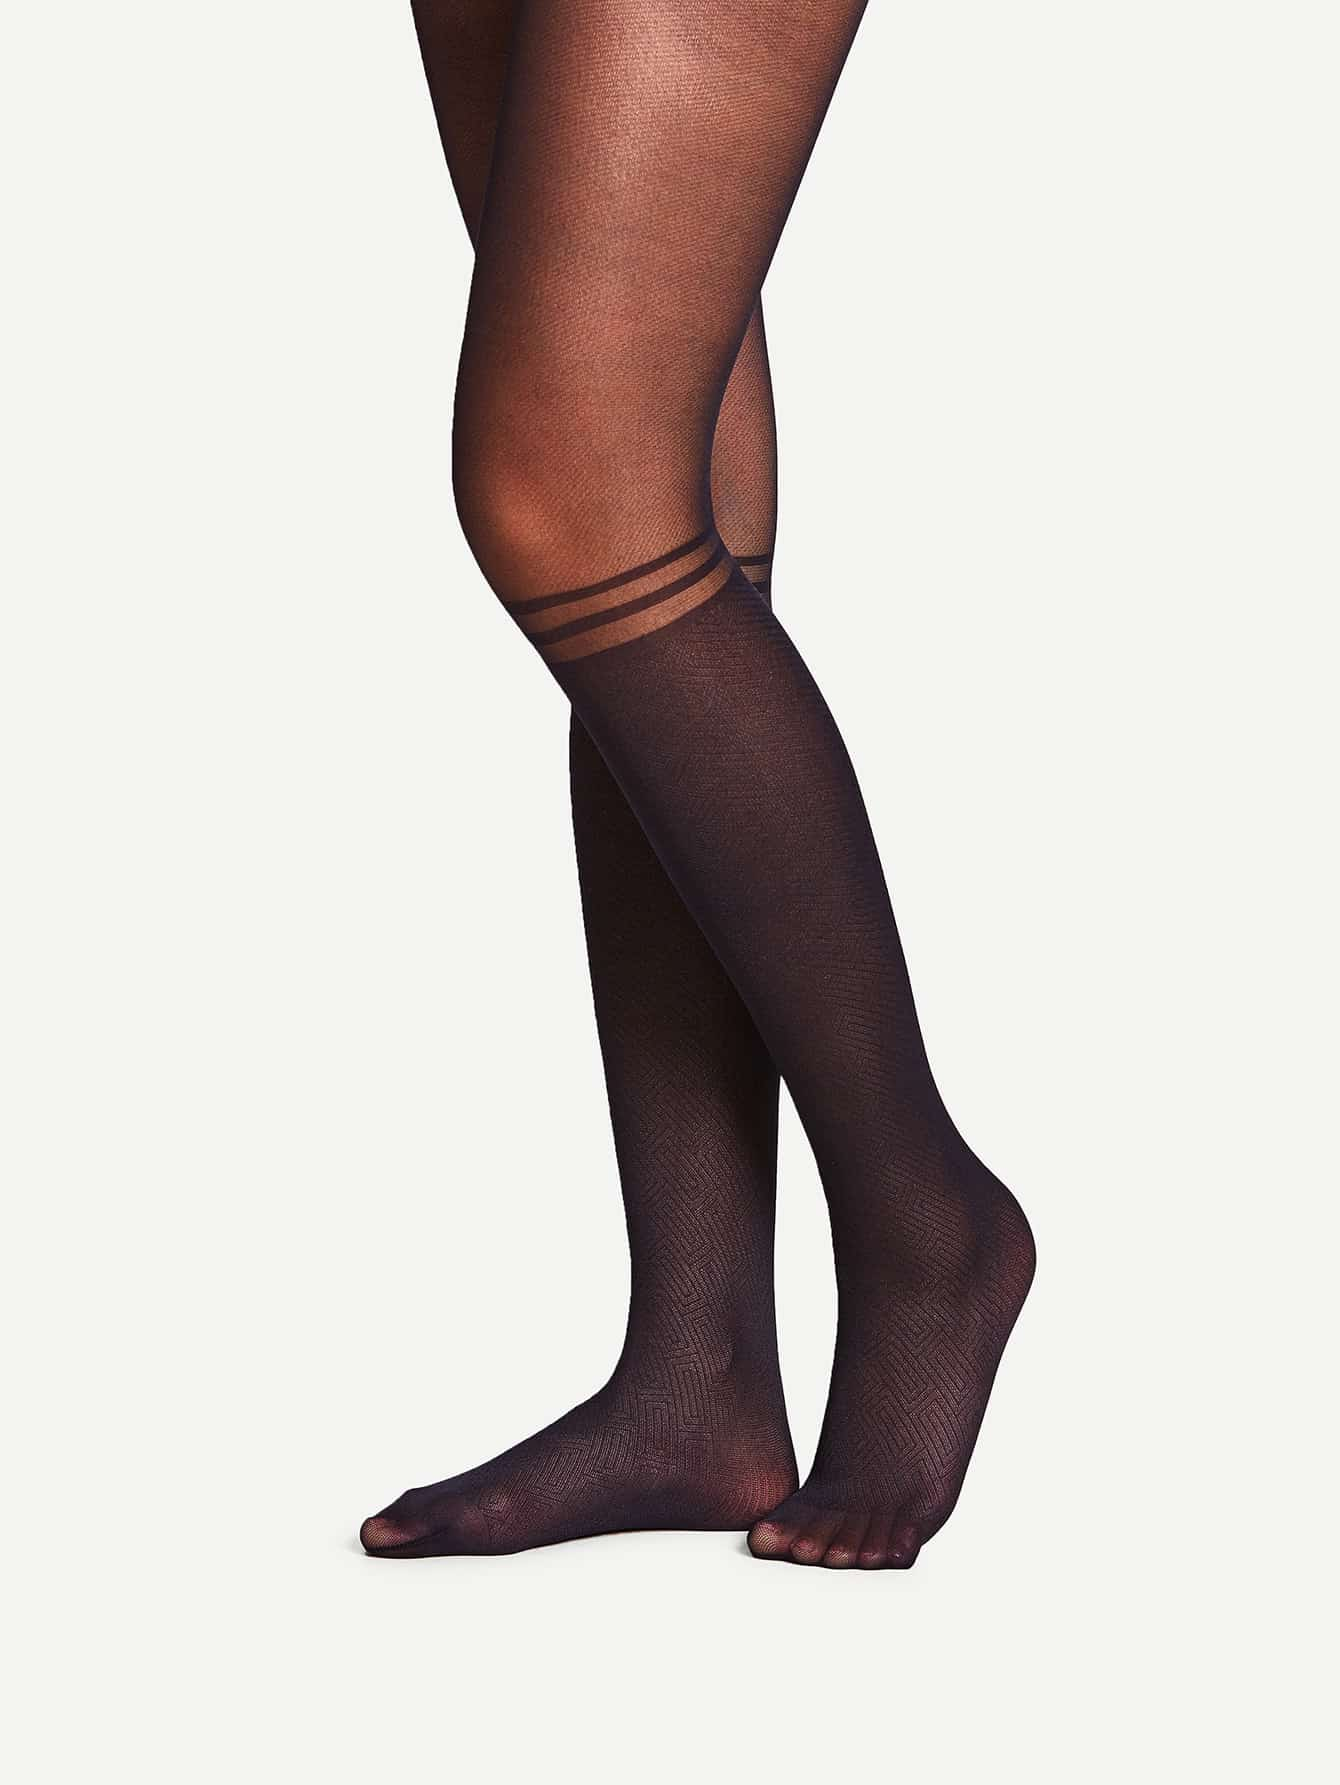 Two Tone Striped Tights 20d striped mesh tights